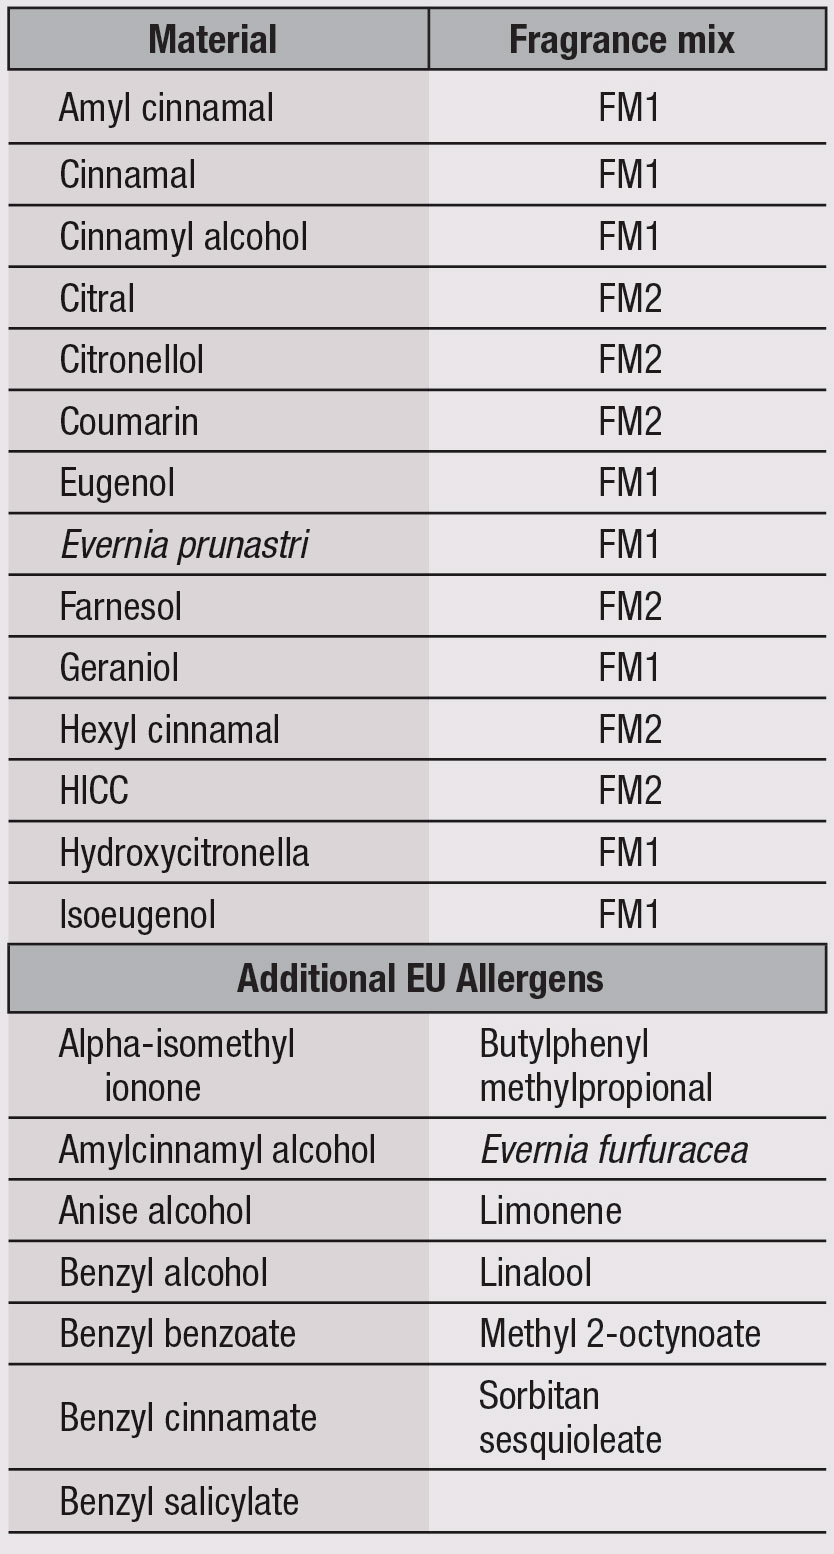 Table 1. Fragrance Mix Allergens and Additional EU Allergens